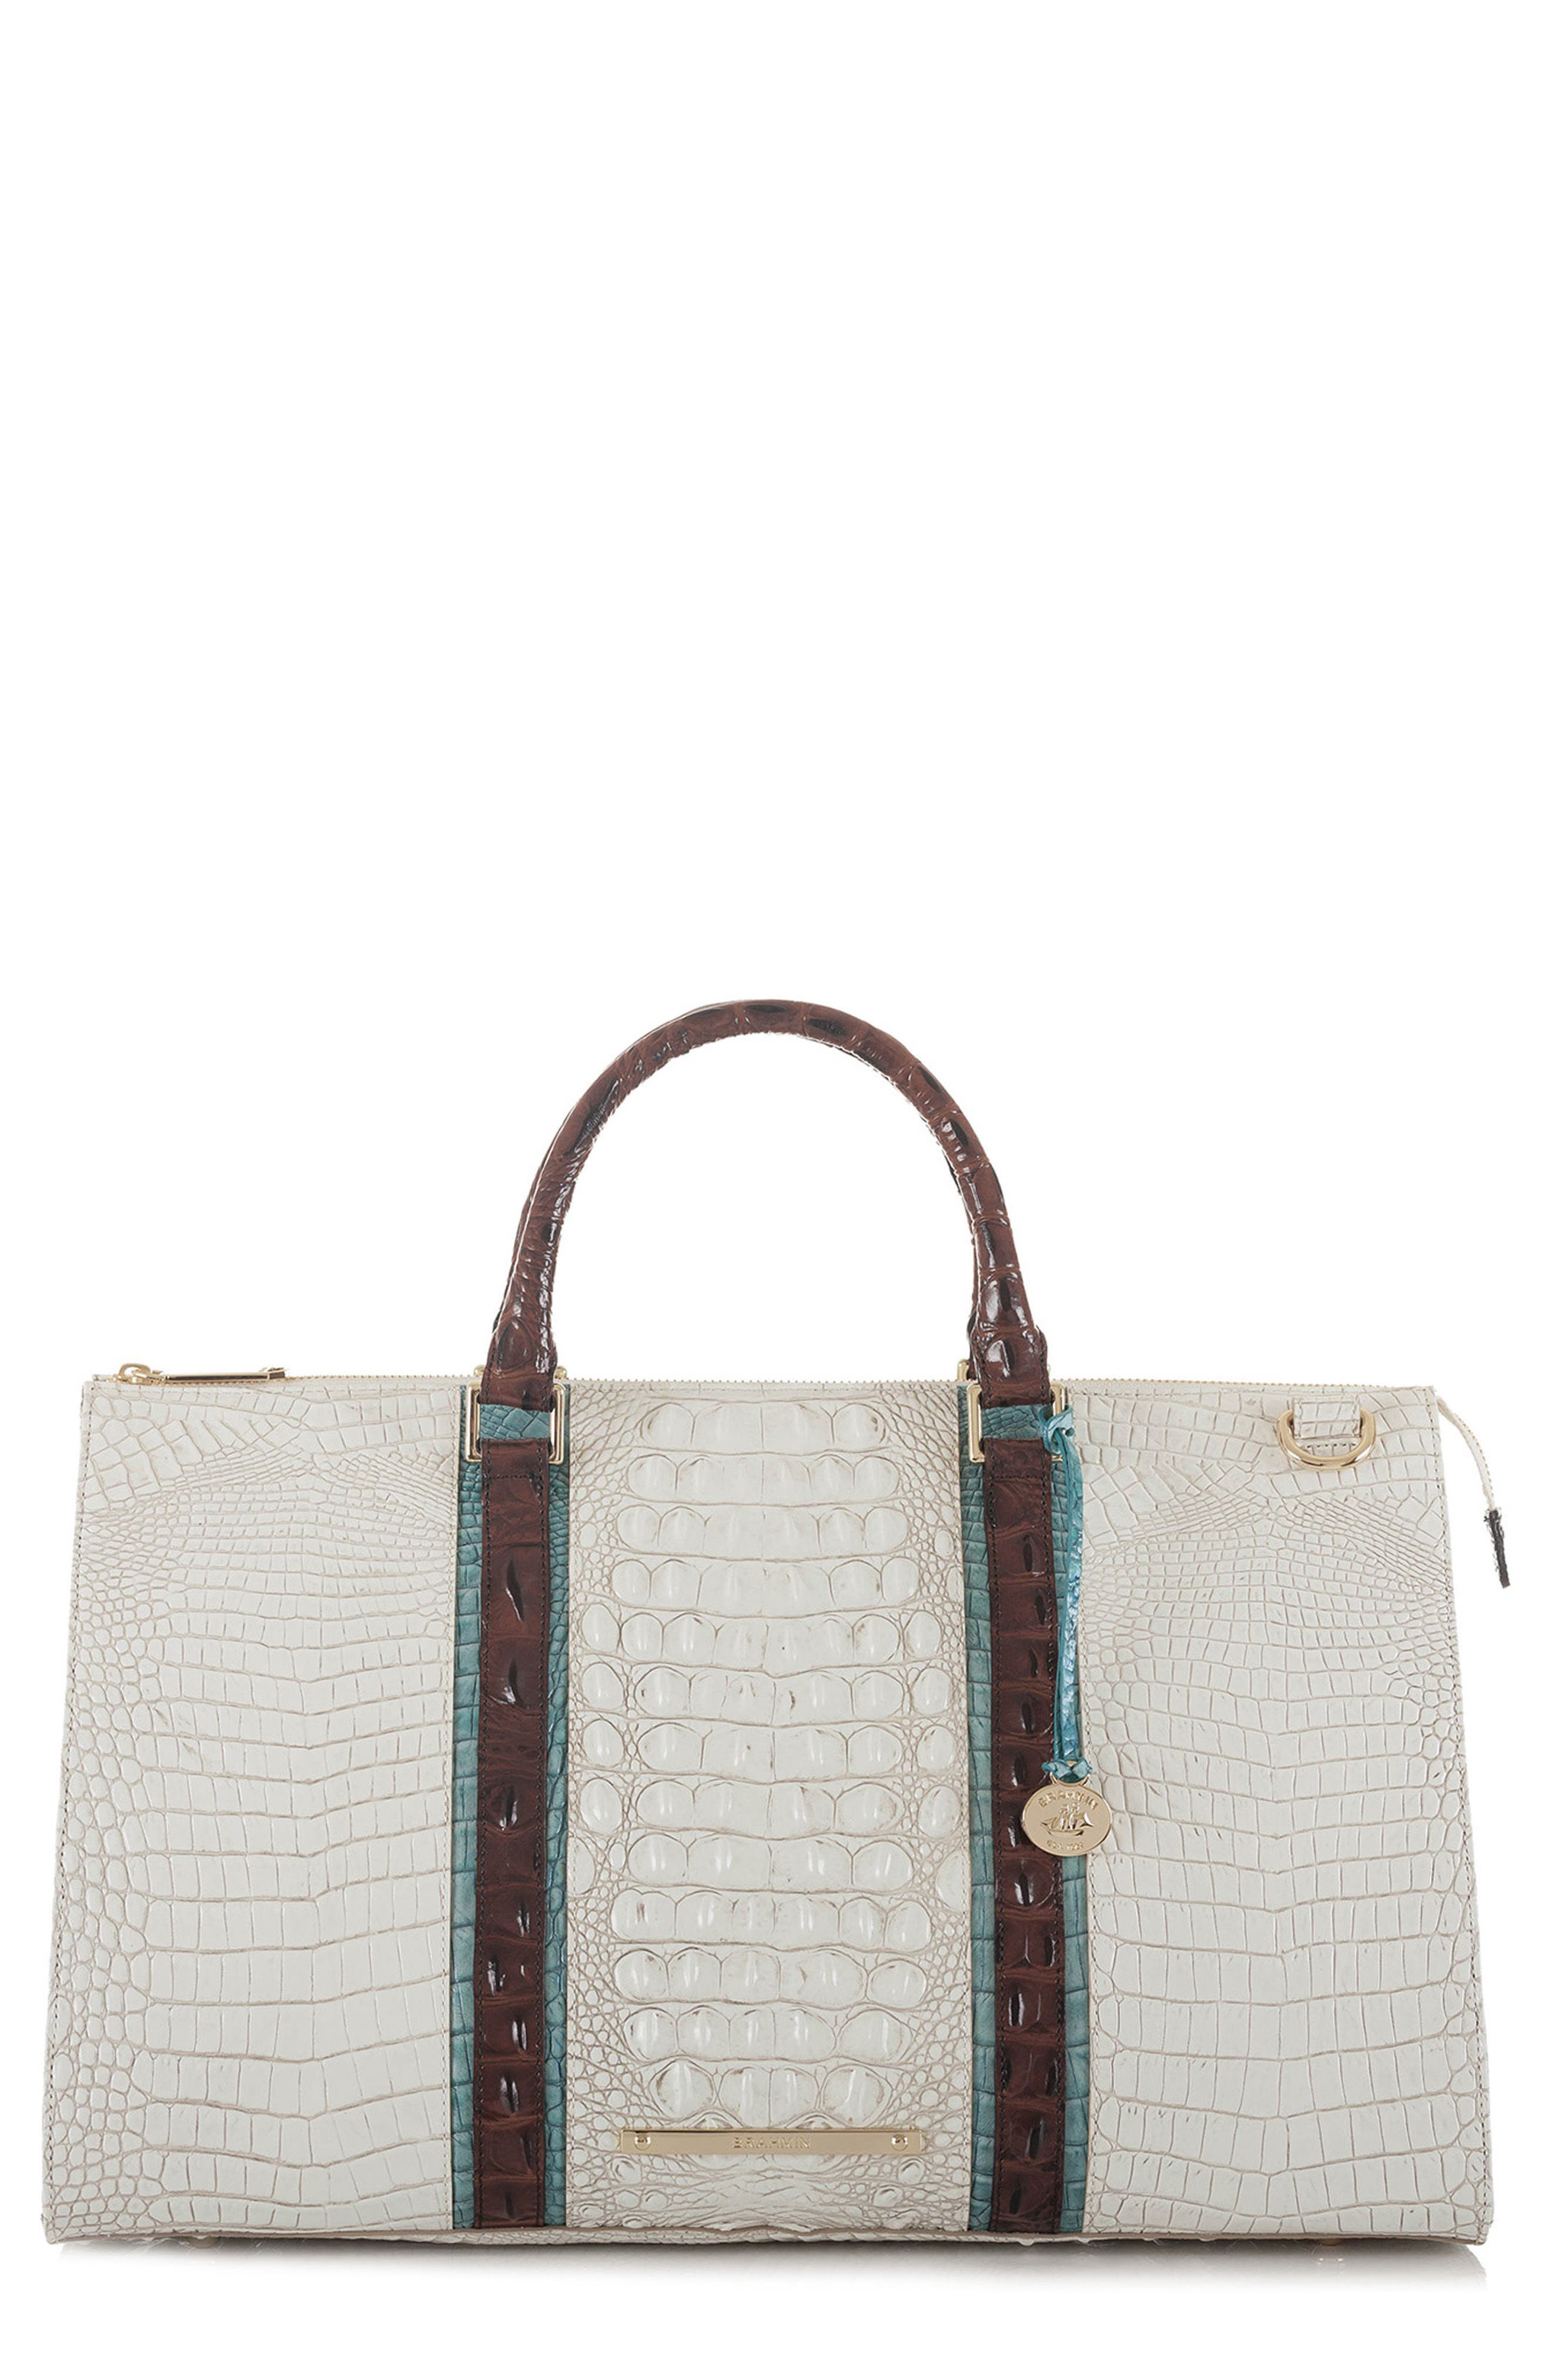 Anywhere Weekend Leather Bag,                         Main,                         color, Coconut